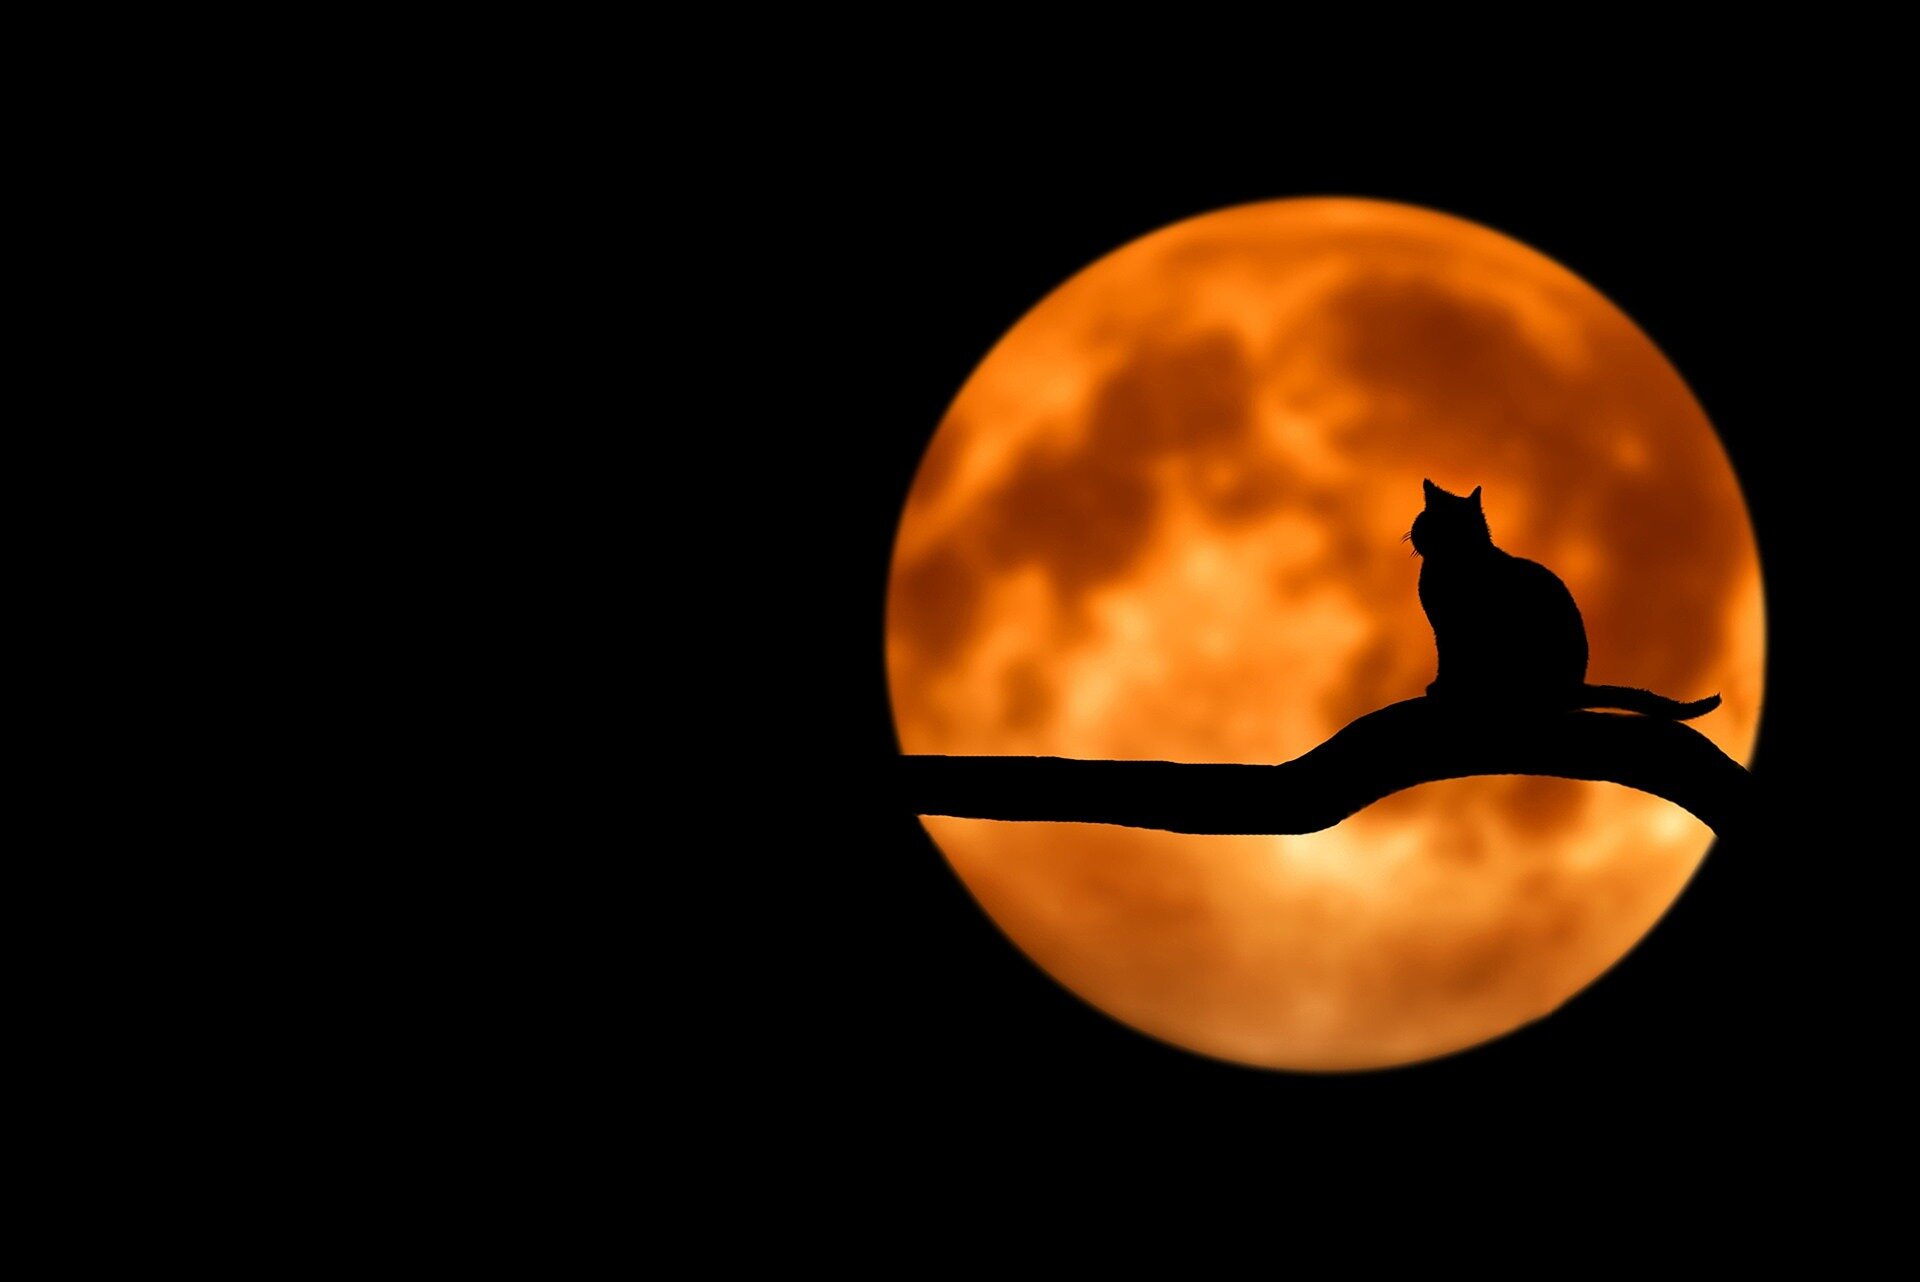 Look up! The Strawberry Moon will shine bright tonight